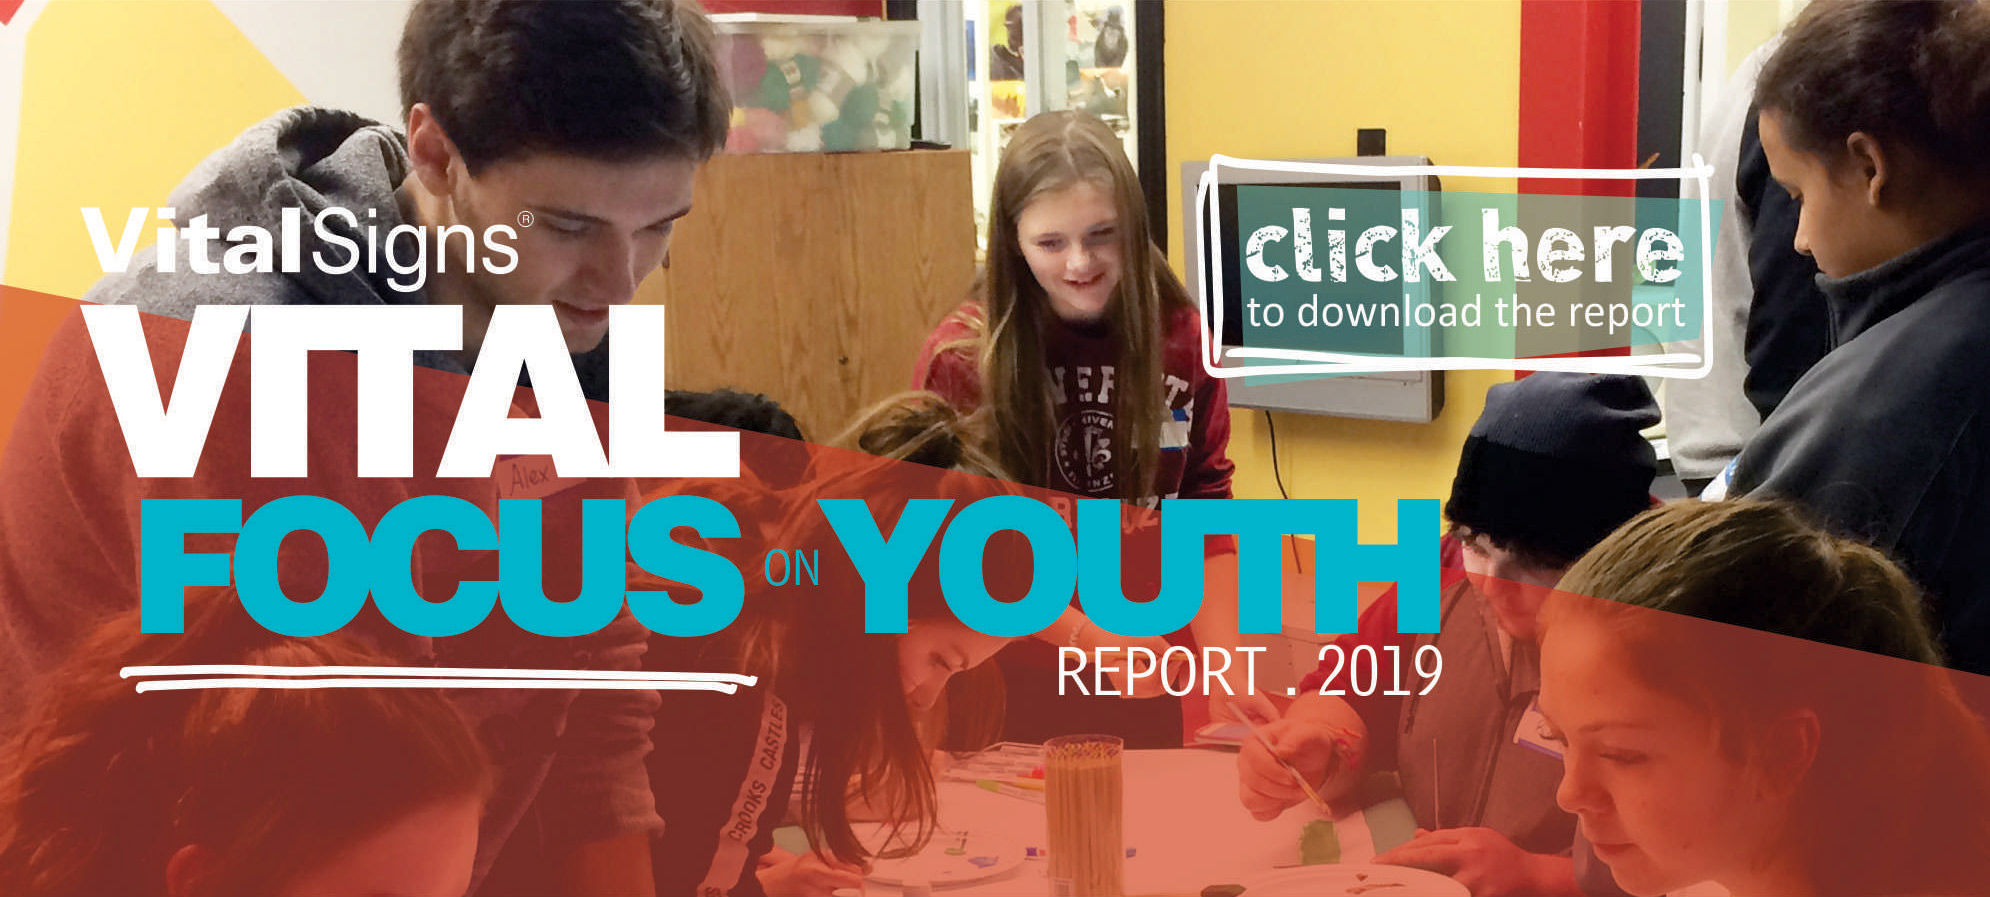 Vital Signs Vital Focus on Youth Report 2019